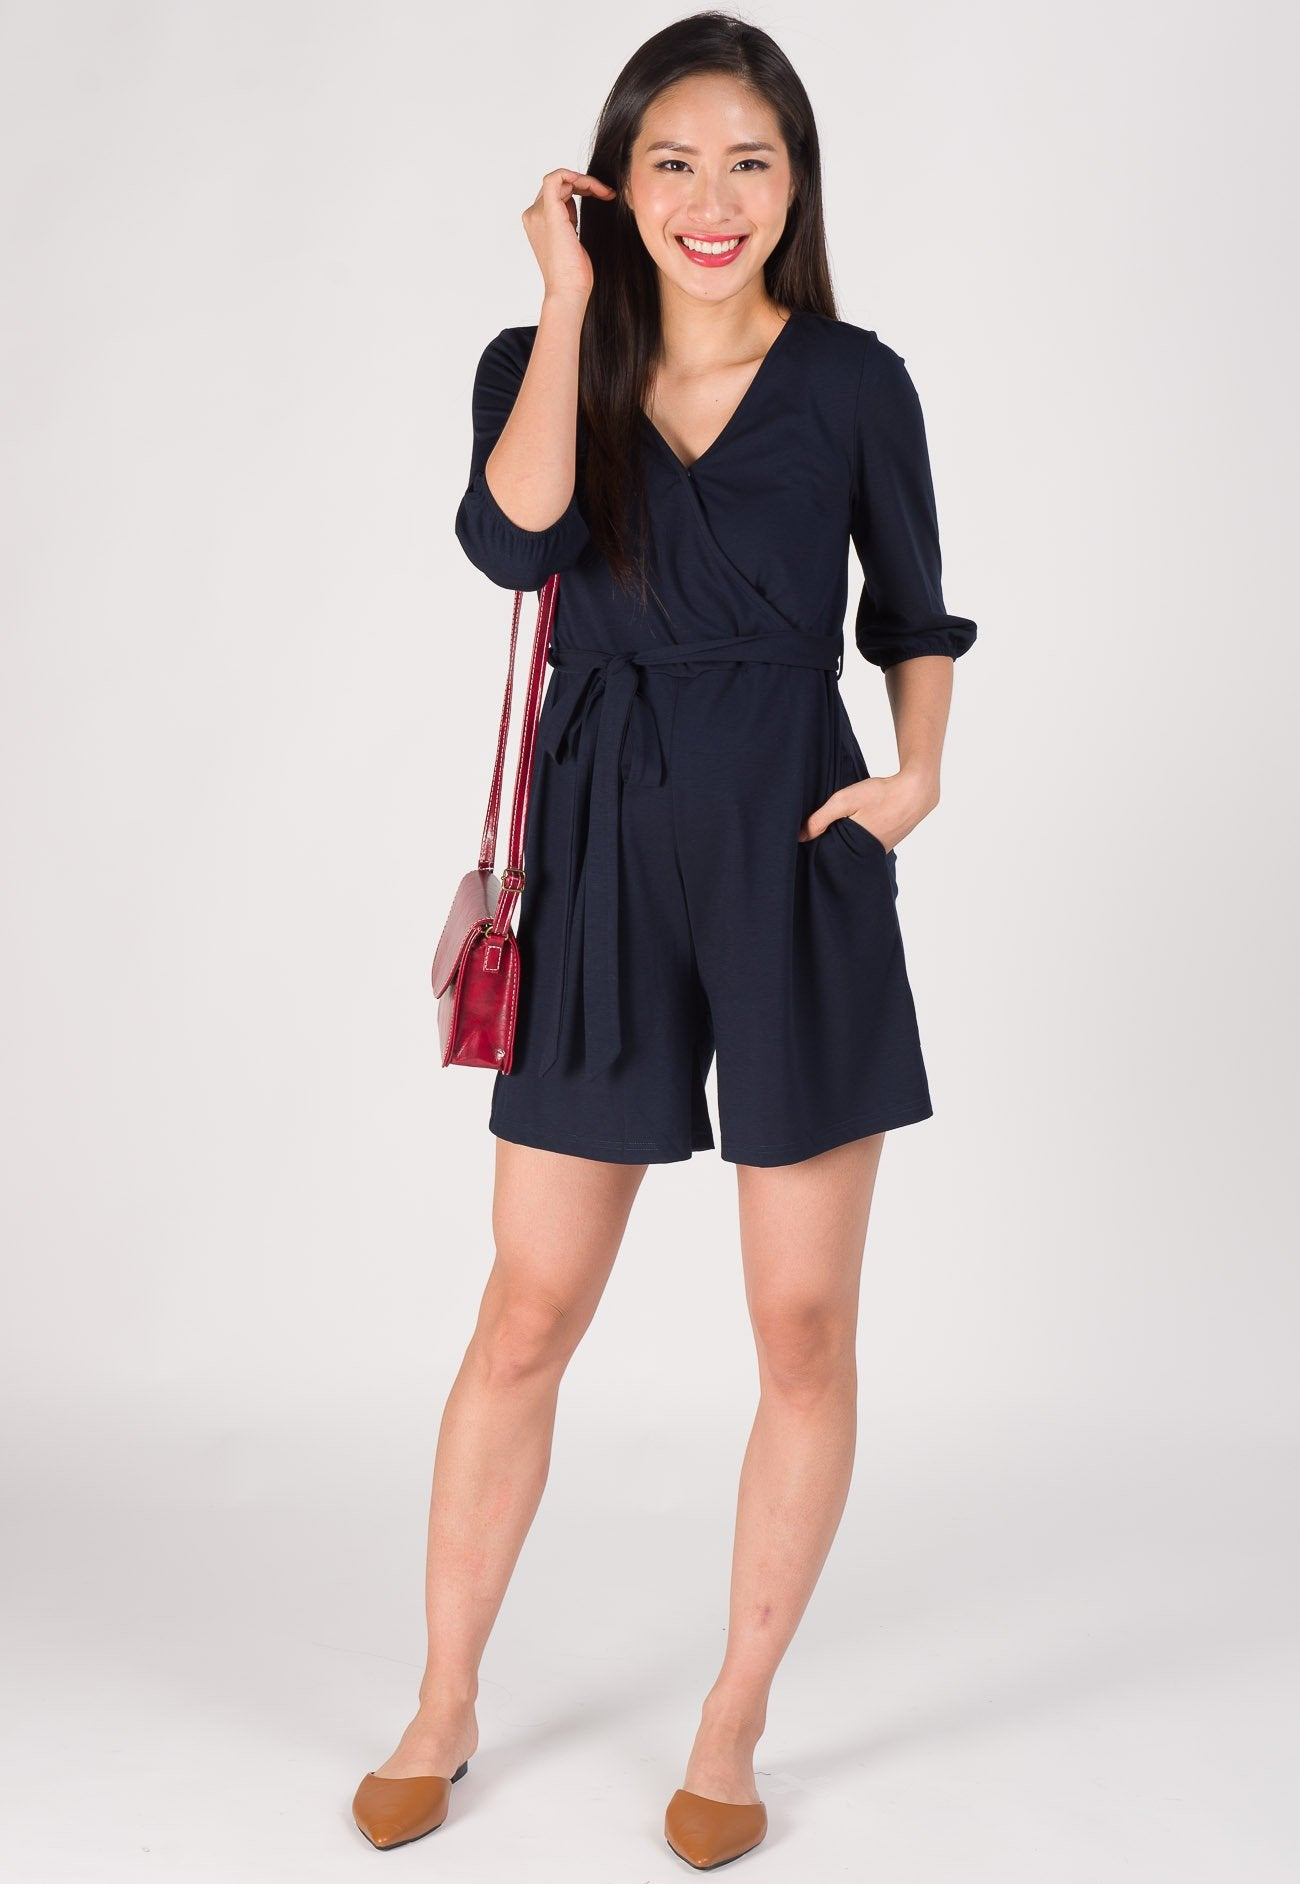 Mara Nursing Romper in Navy  by Jump Eat Cry - Maternity and nursing wear